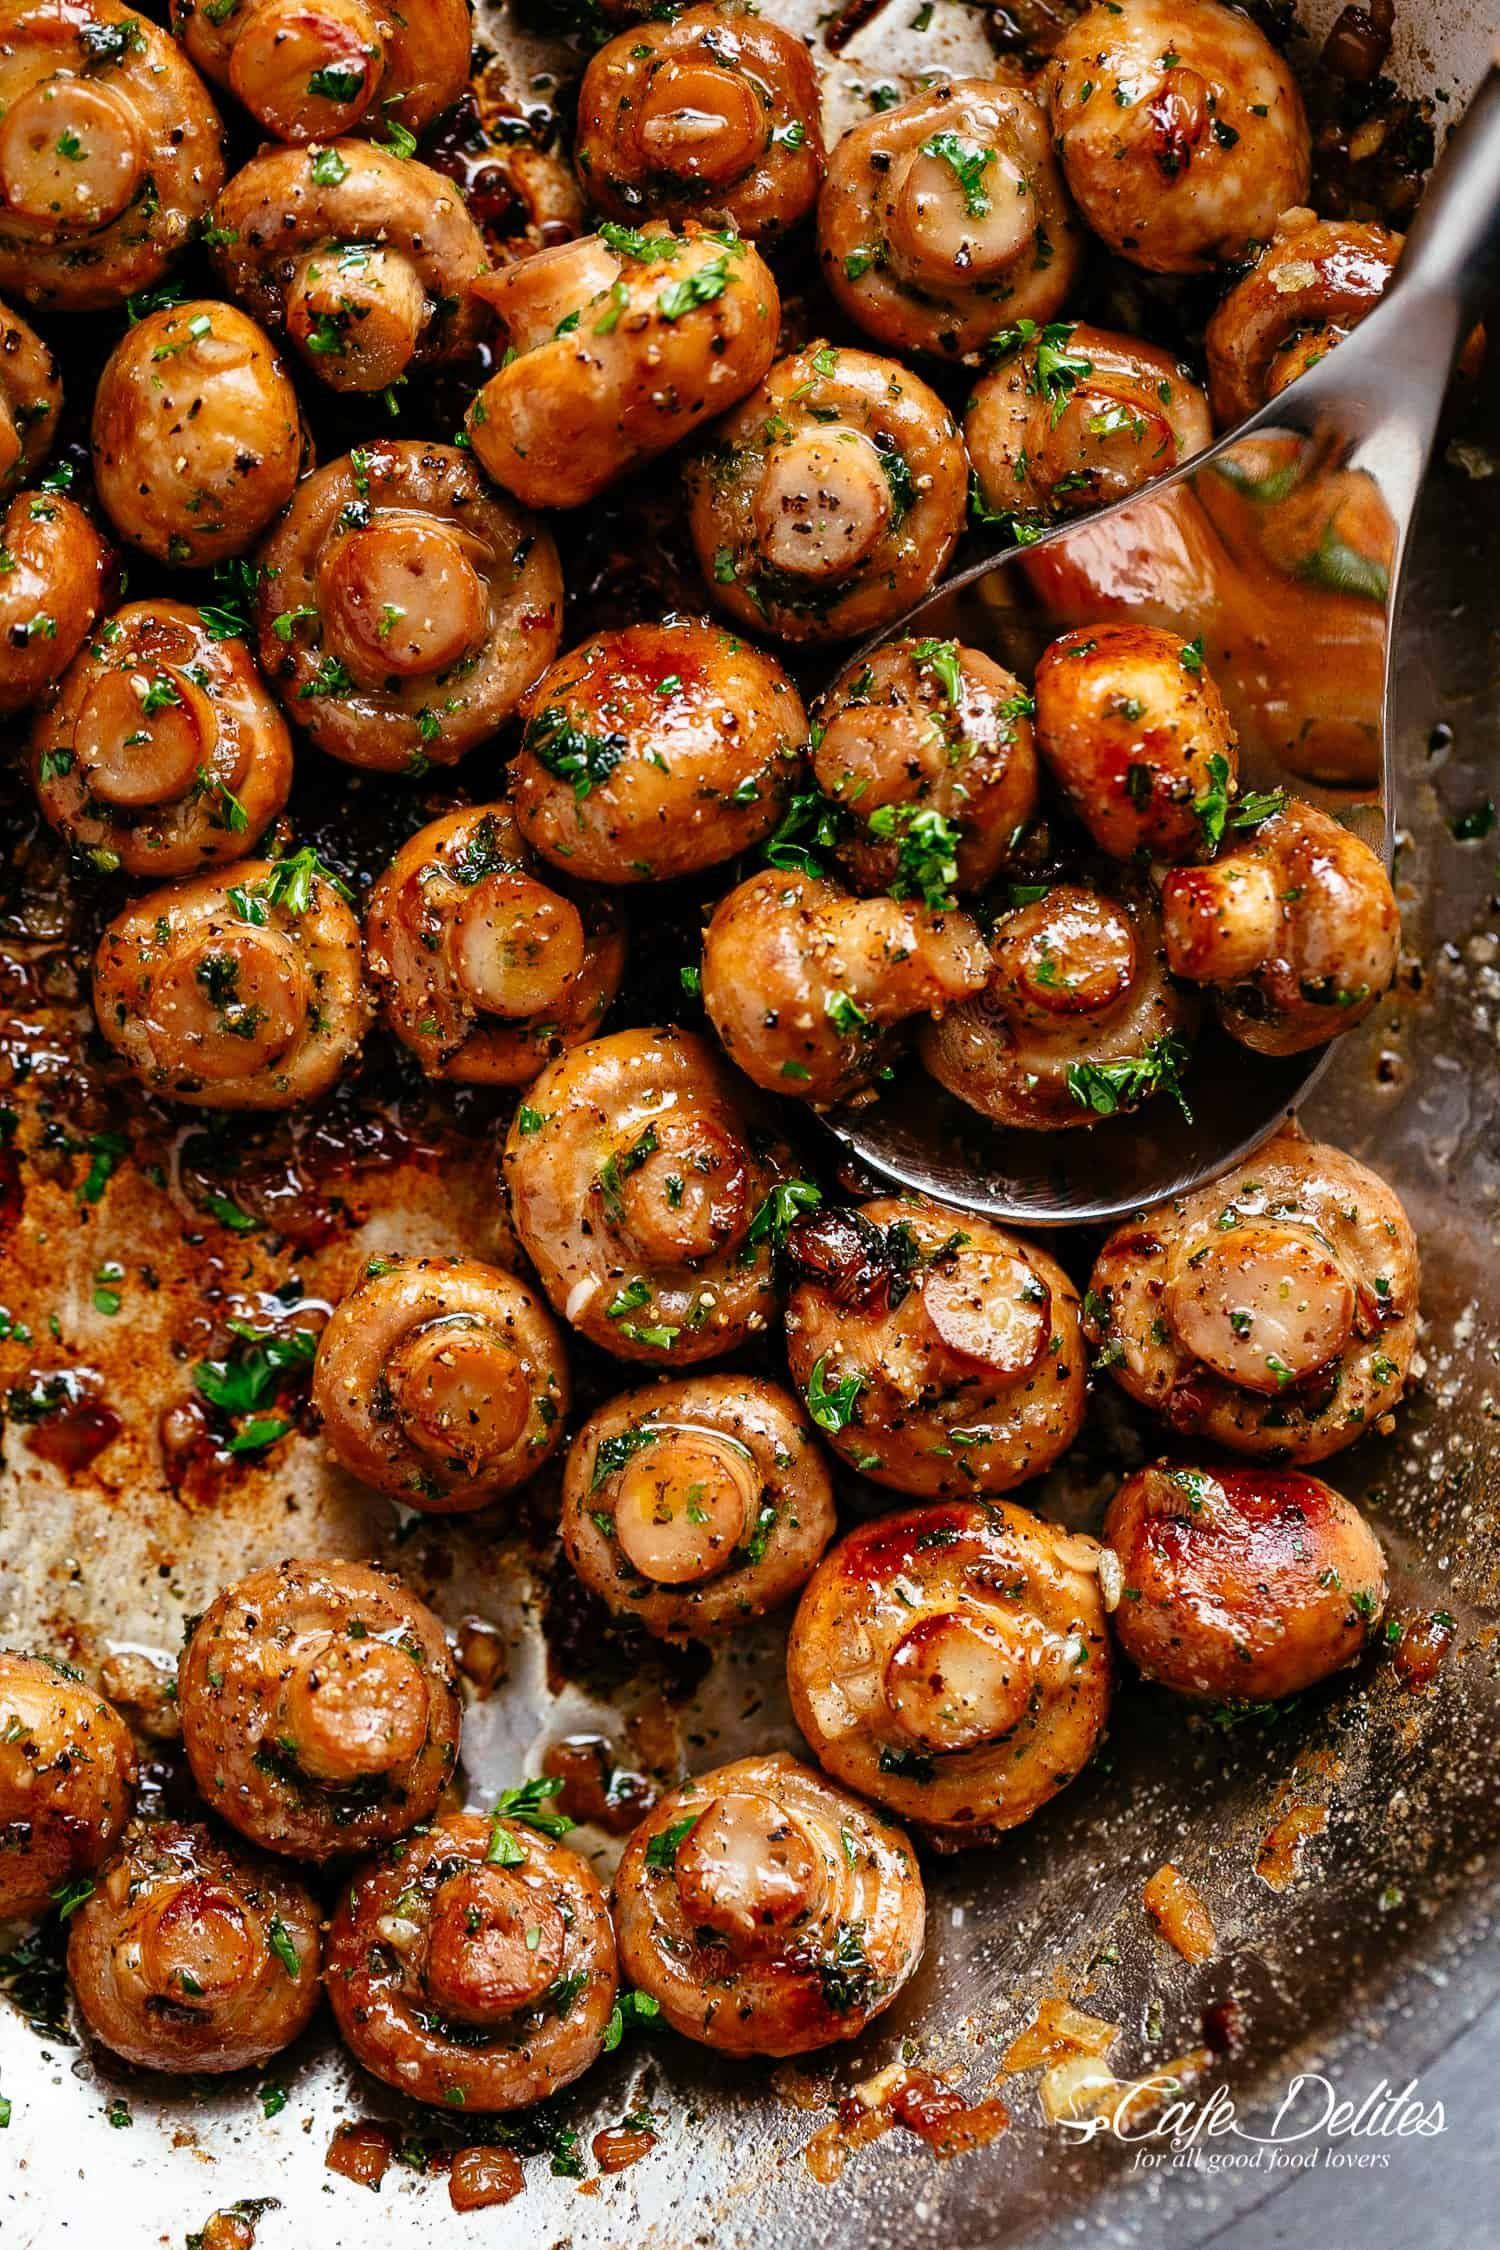 Top 25 Mushroom Recipes To Make At Any Time #foodsides